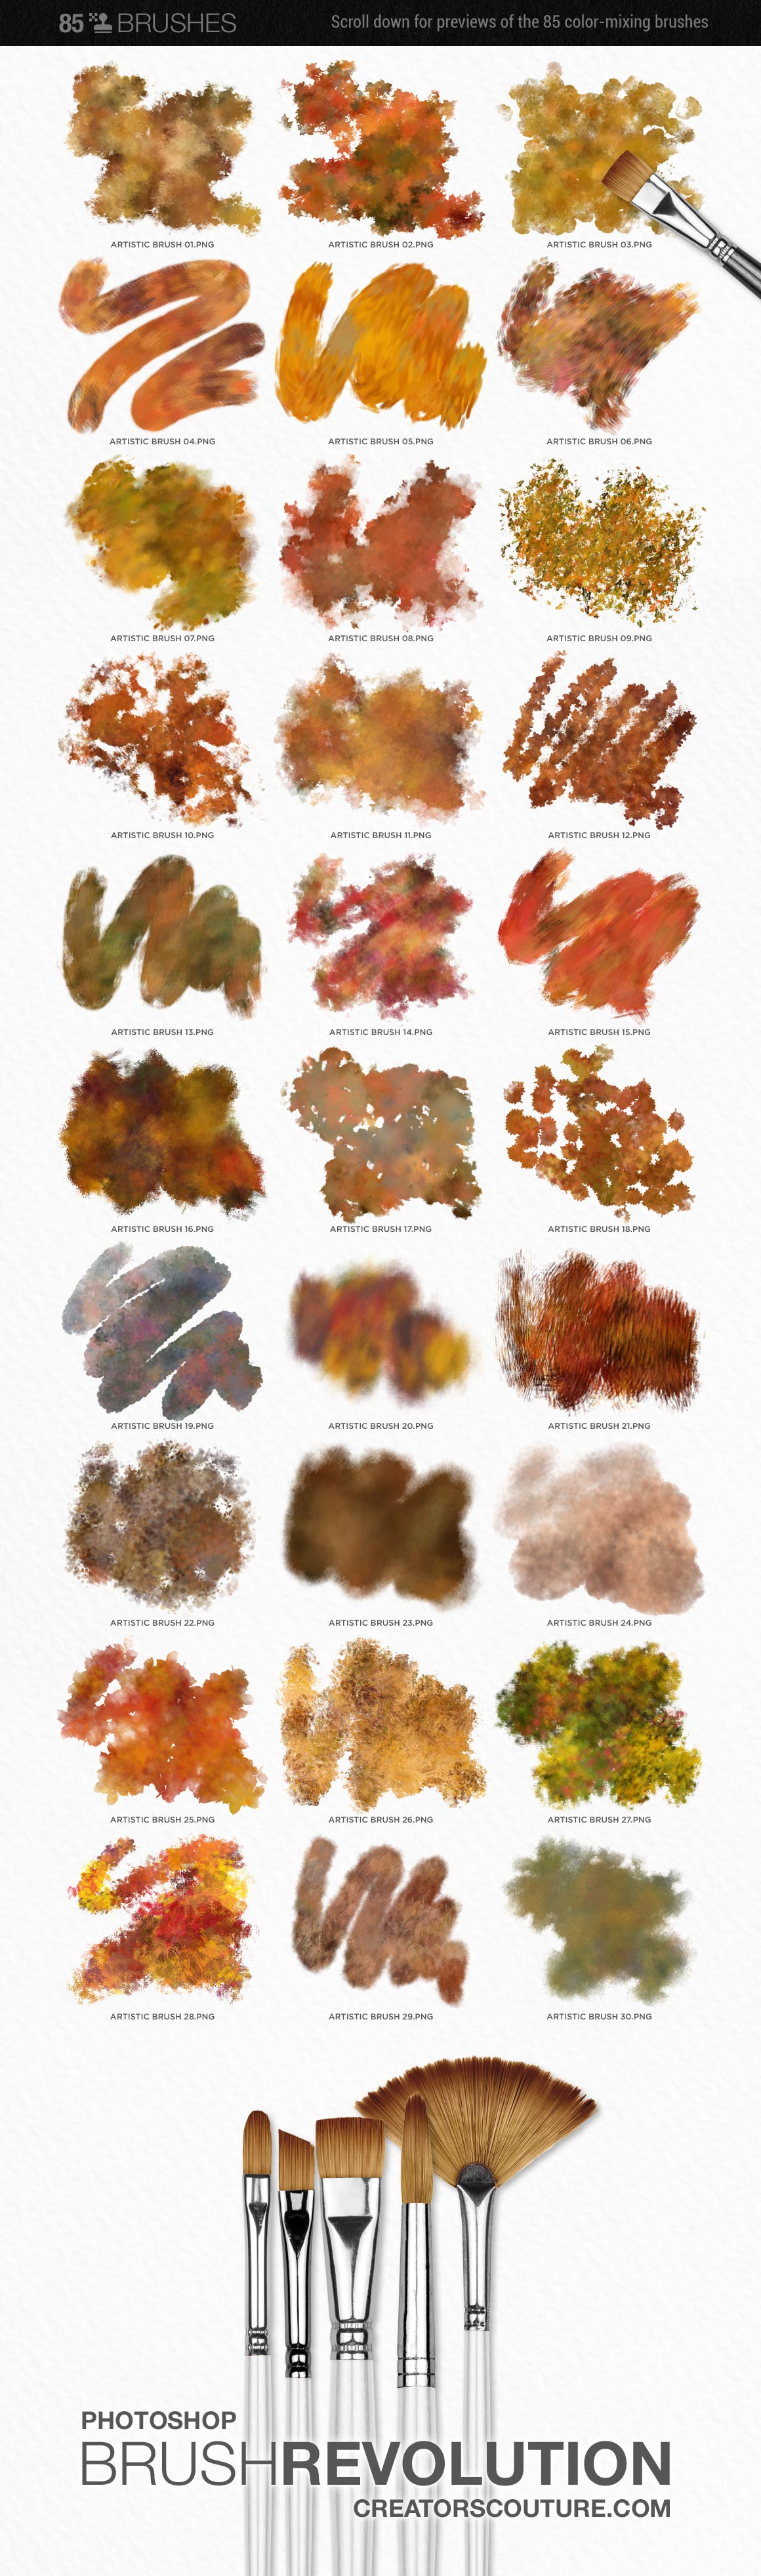 artistic color-blending photoshop brush preview chart